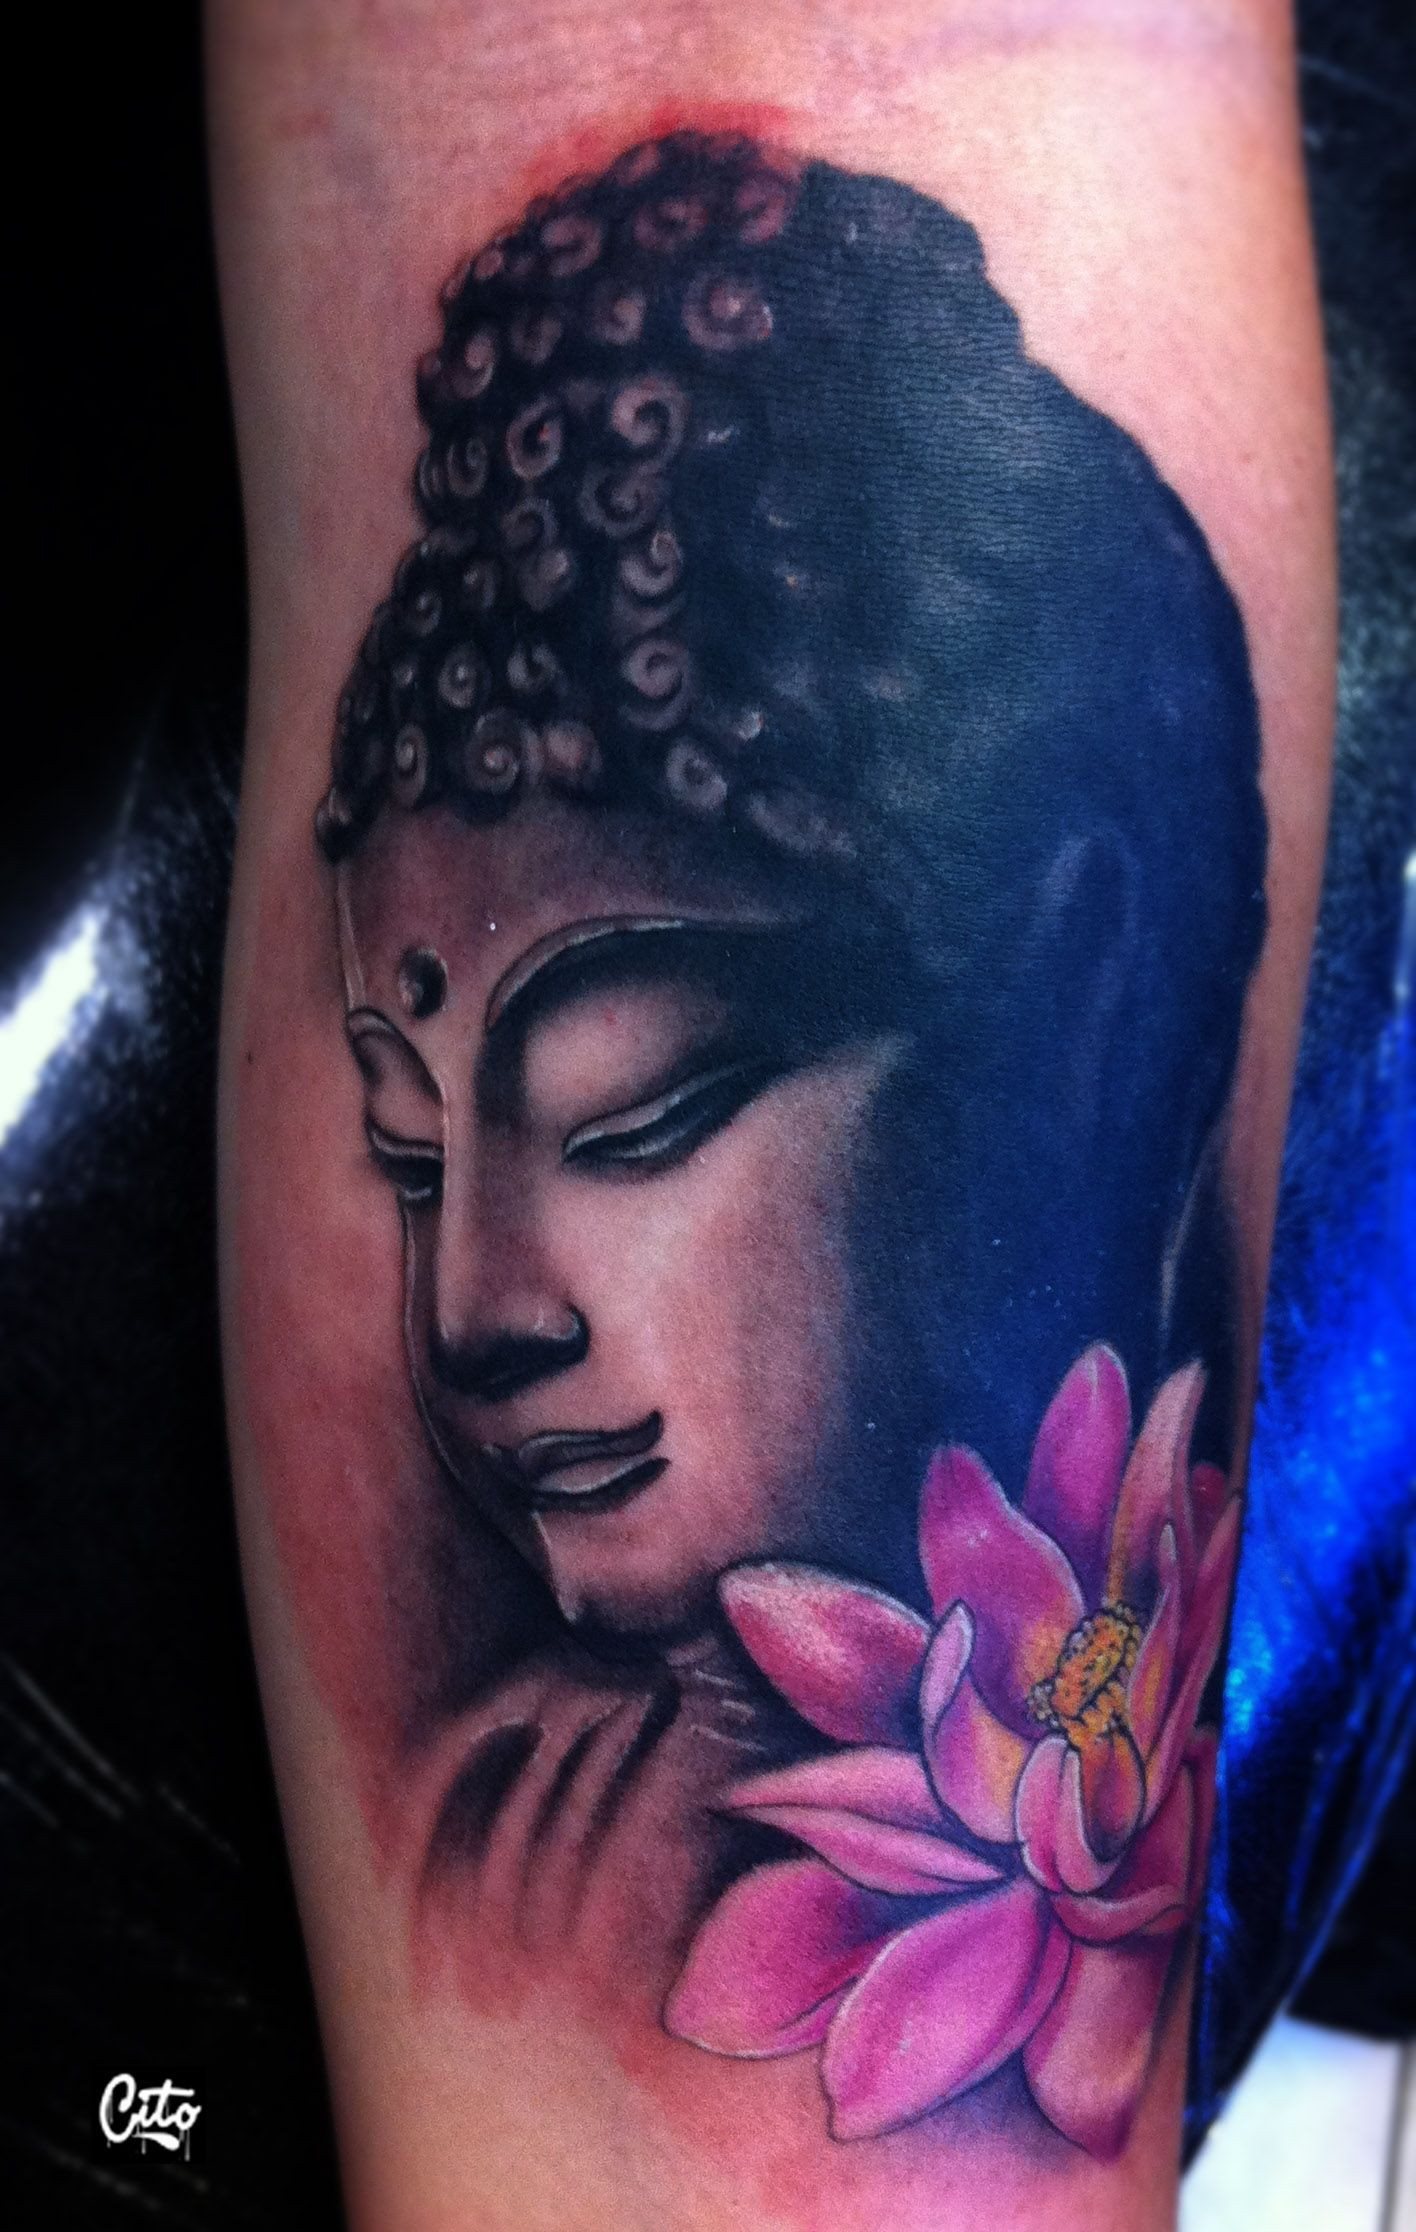 buddhist tattoos meaning and symbols Tat's so cute